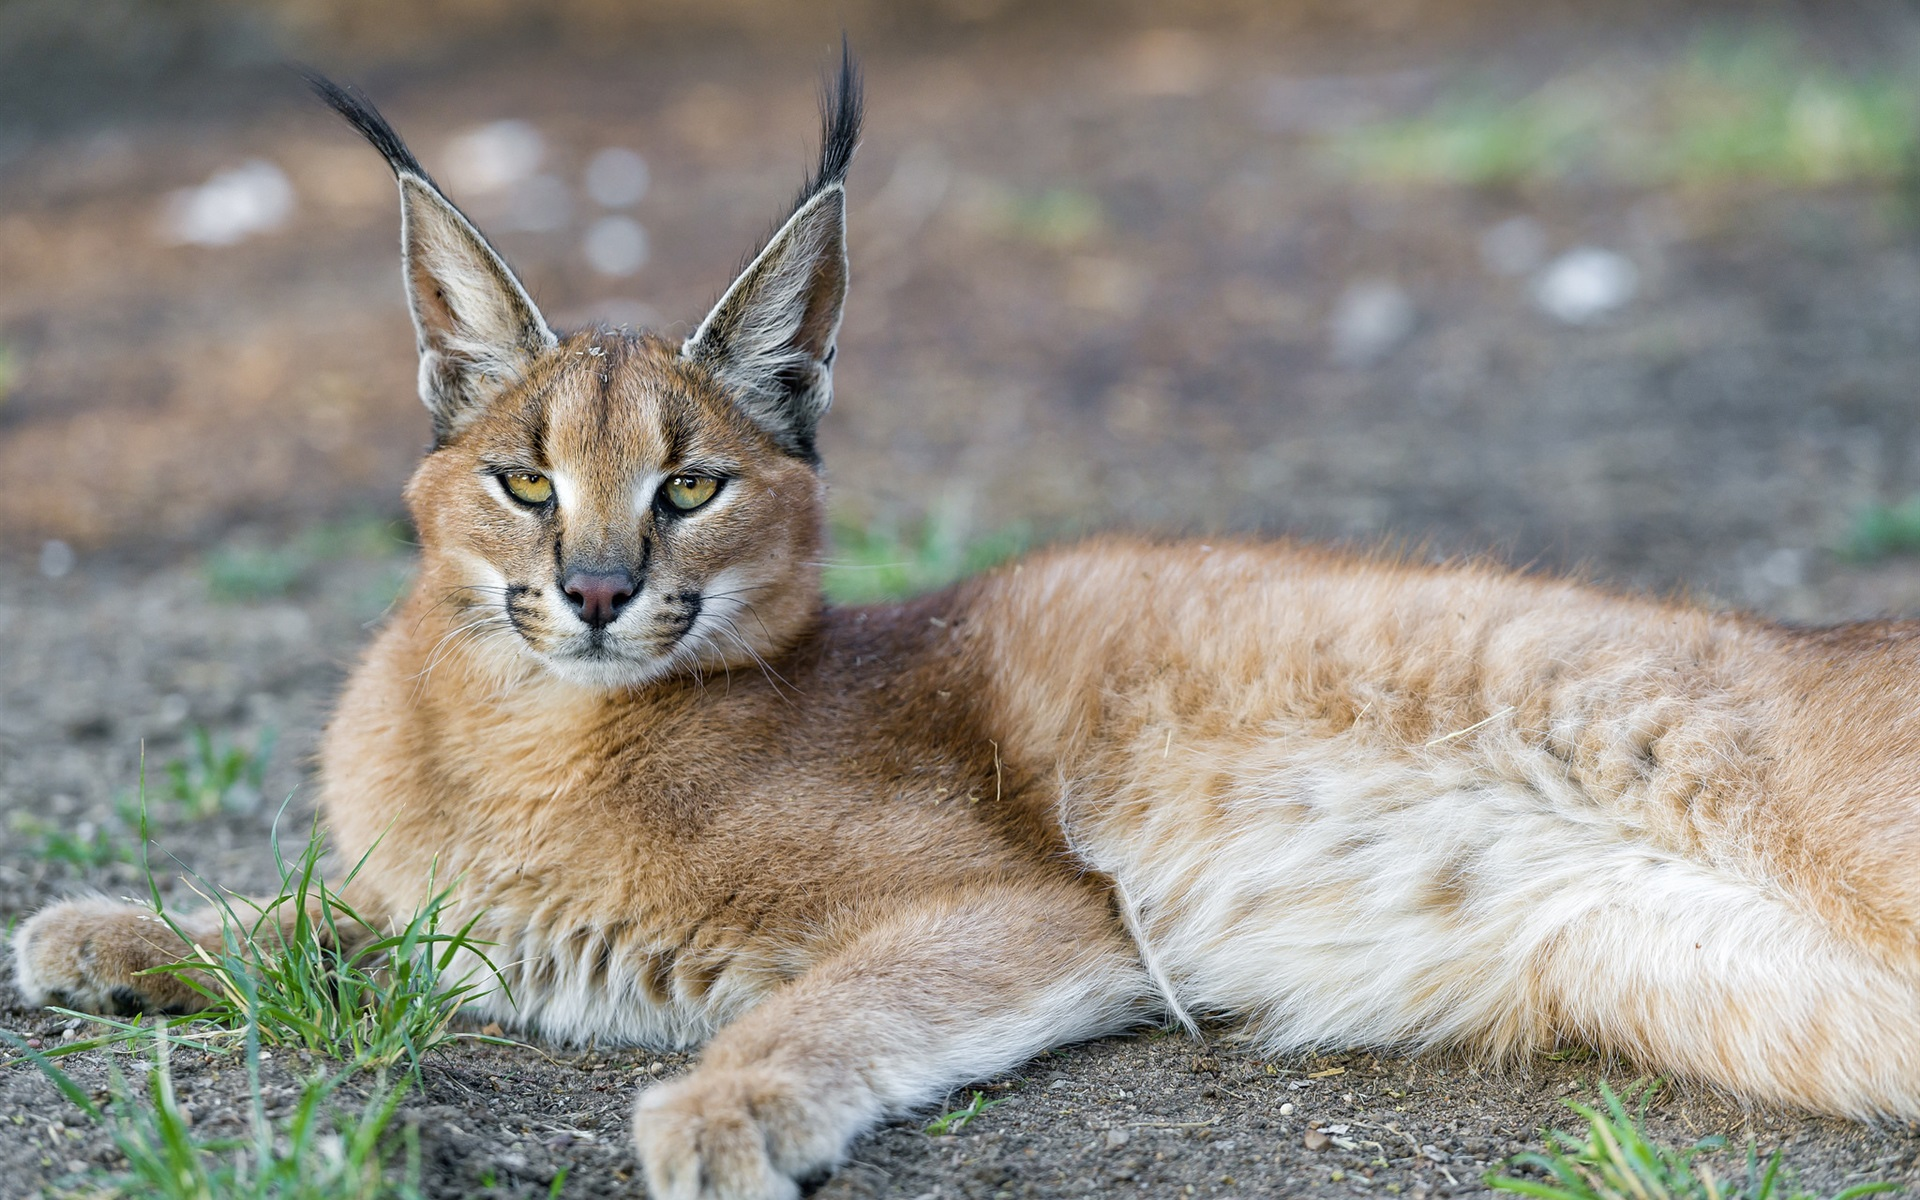 Lynx-predator-face-yellow-eyes_1920x1200.jpg